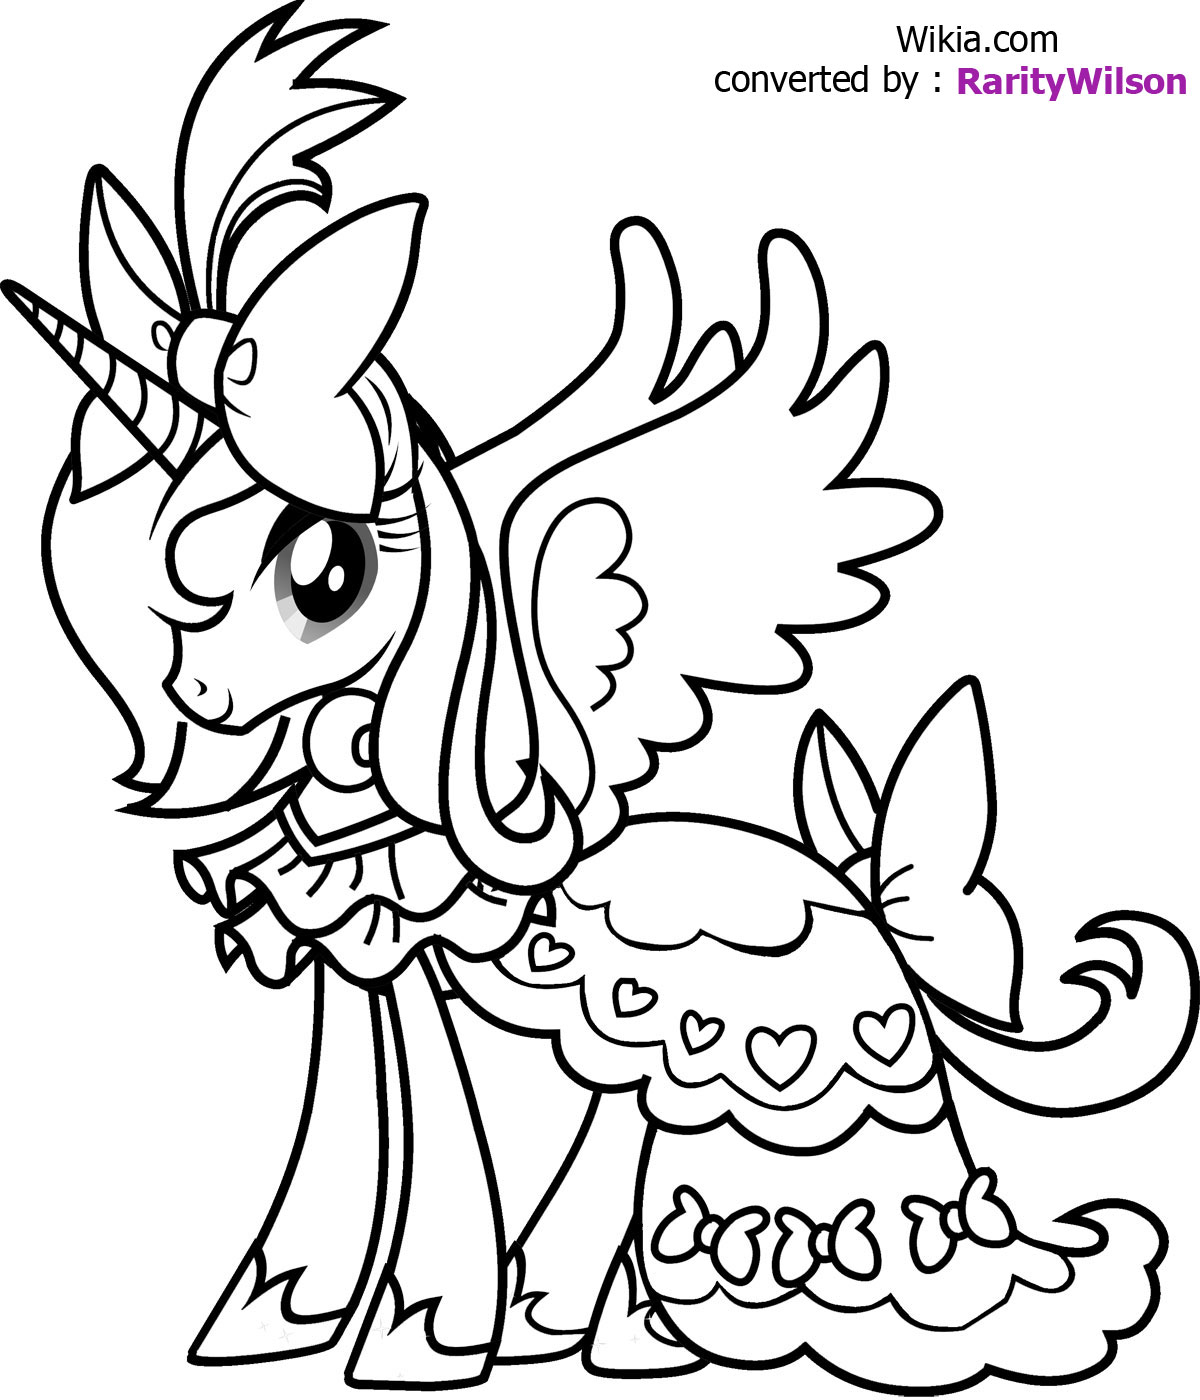 My Little Pony Coloring Pages Google Search : My little pony coloring pages kids